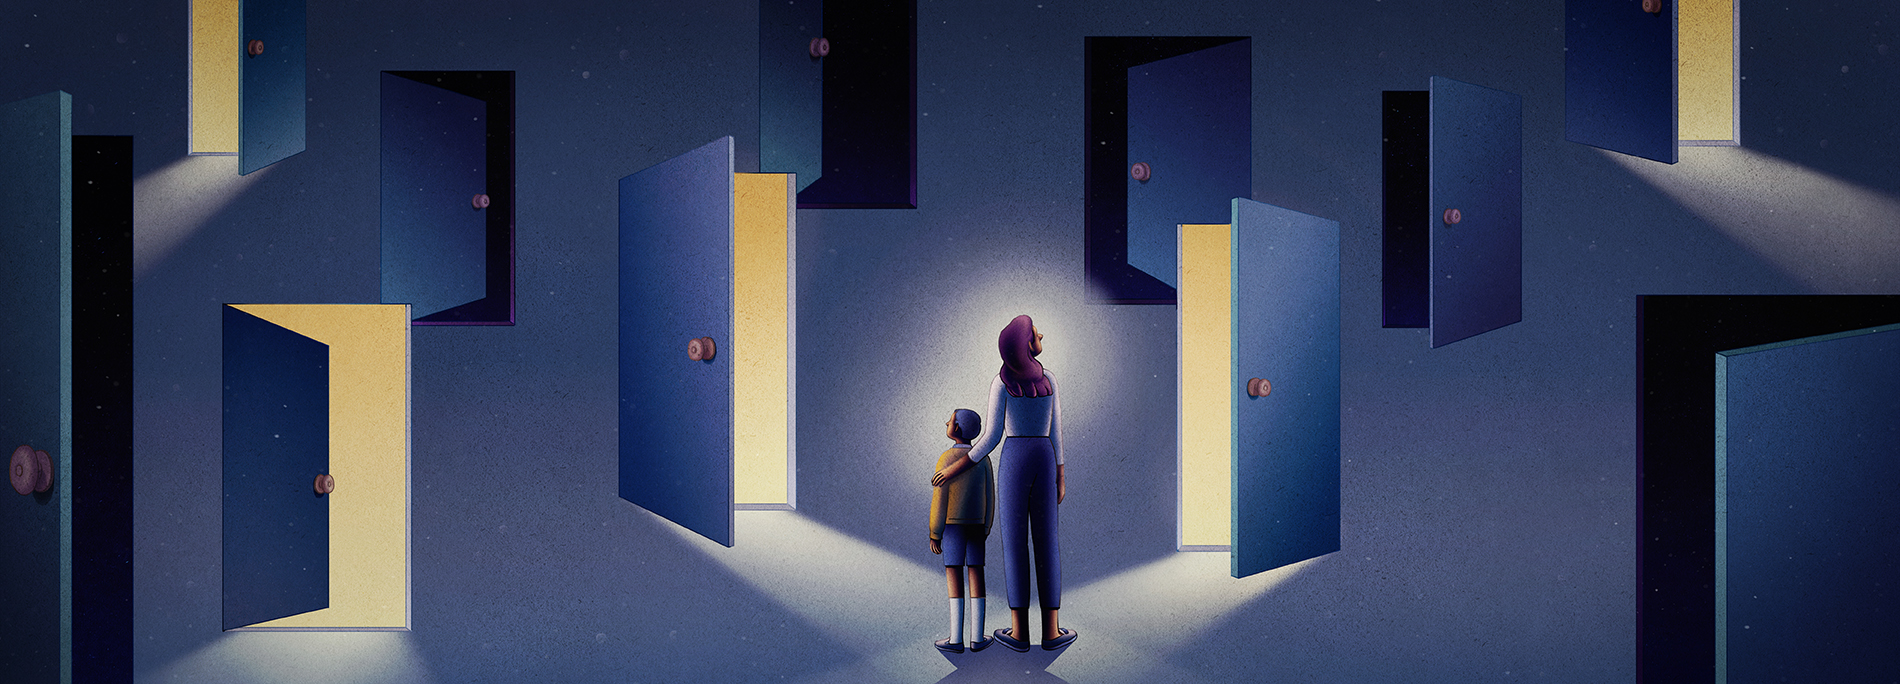 Illustration depicts mother and child facing a field of doors: some are dark and some are light